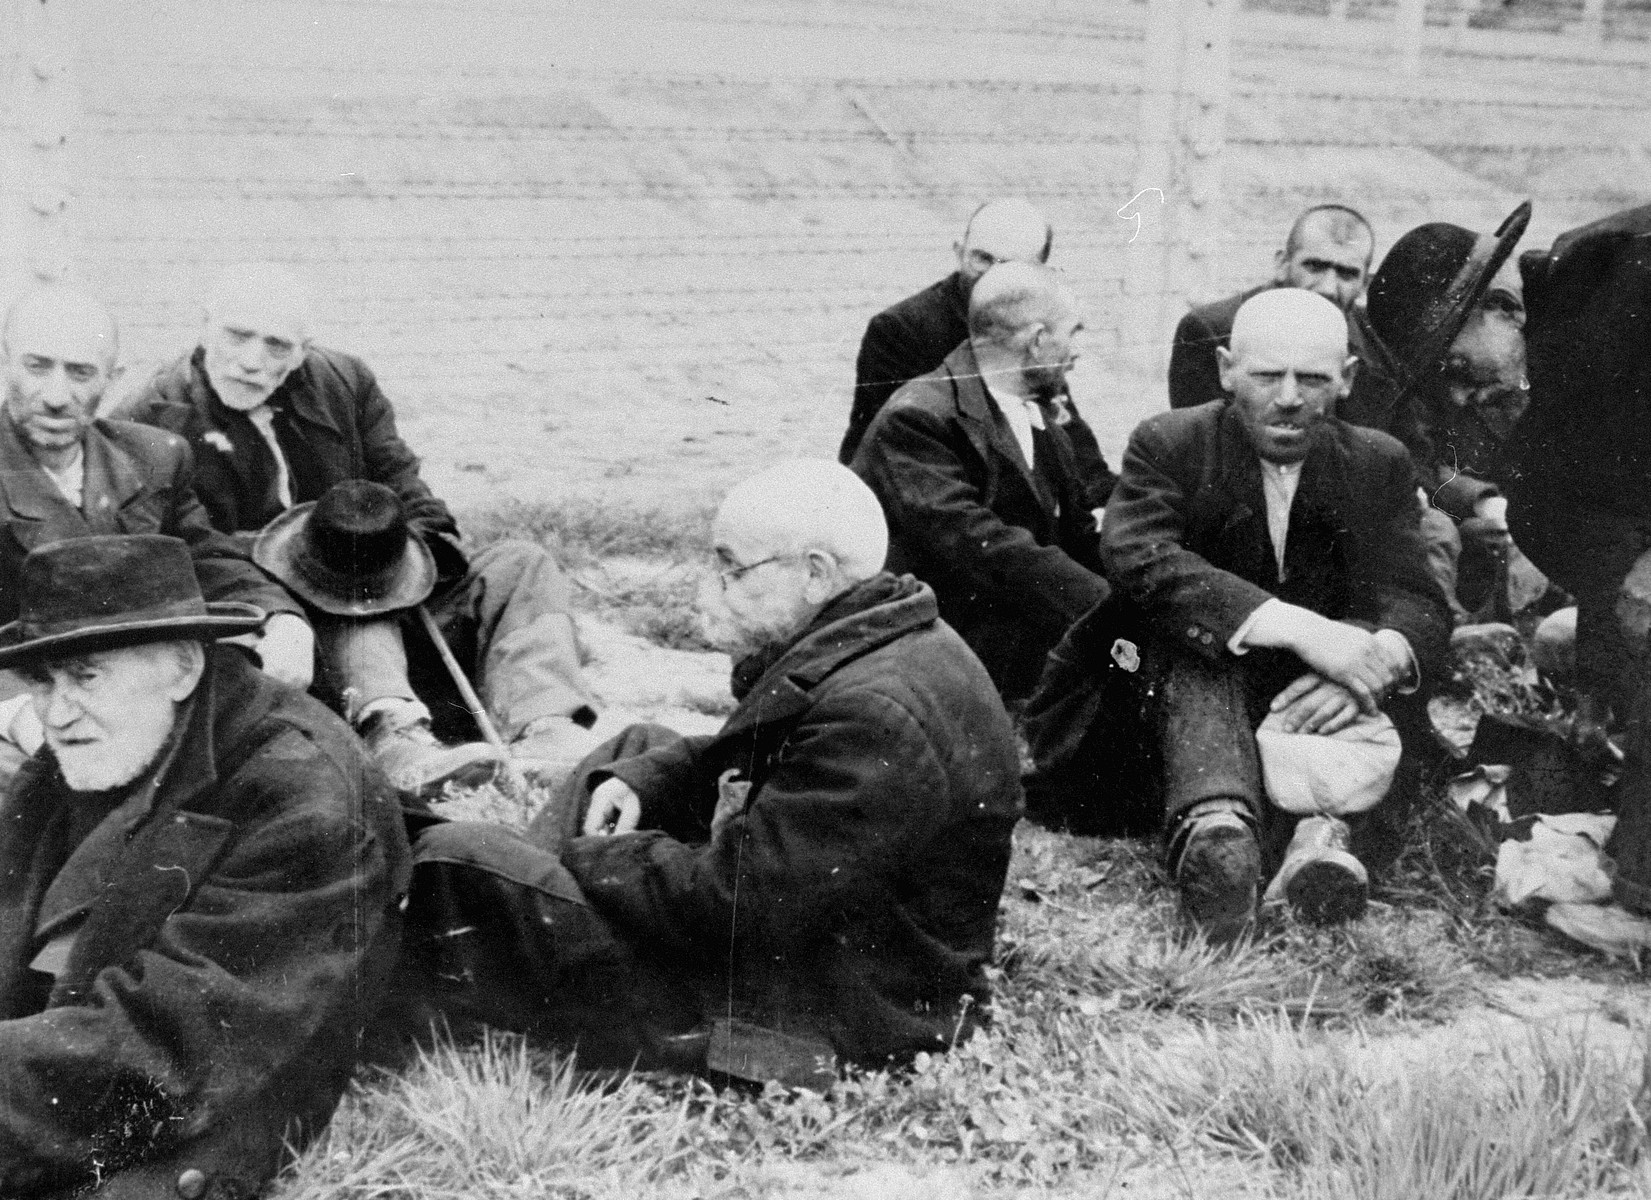 Elderly Jewish men from Subcarpathian Rus sit on the grass in Auschwitz-Birkenau prior to being sent to the gas chambers.